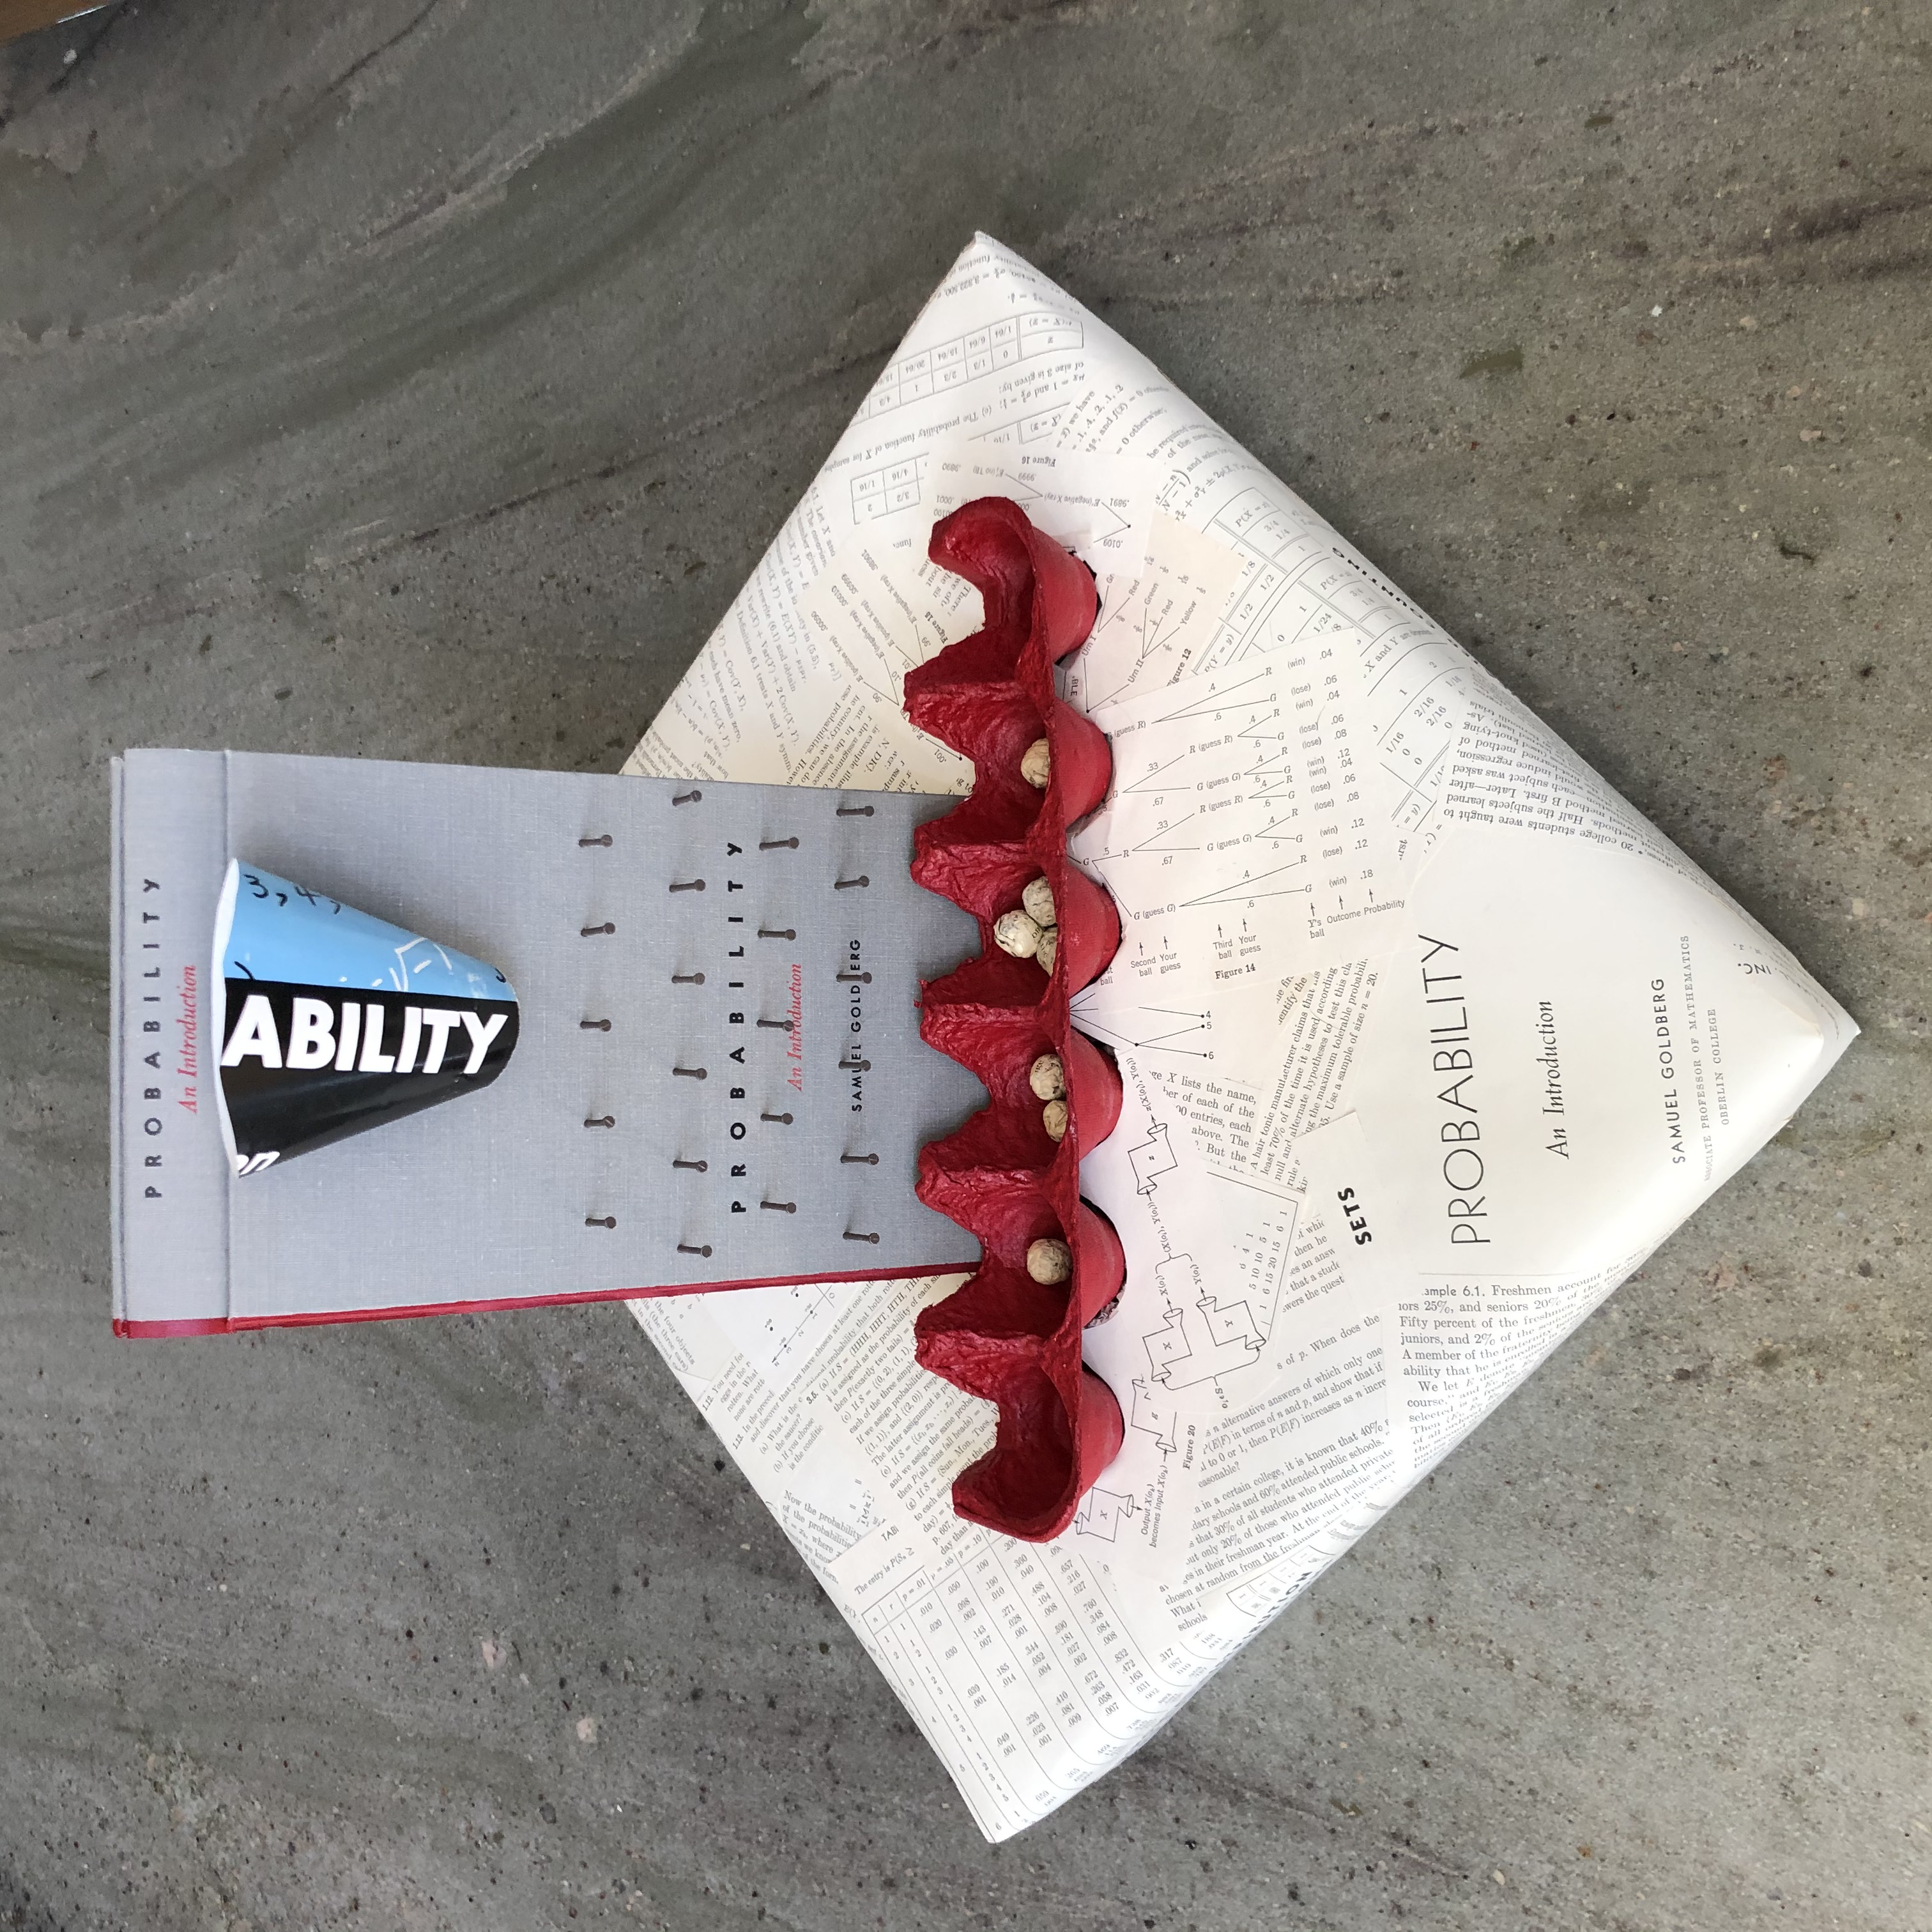 Book that has been turned into a standing peg board where balls can be dropped through a funnel, go through the pegs, and end up in one of several cups